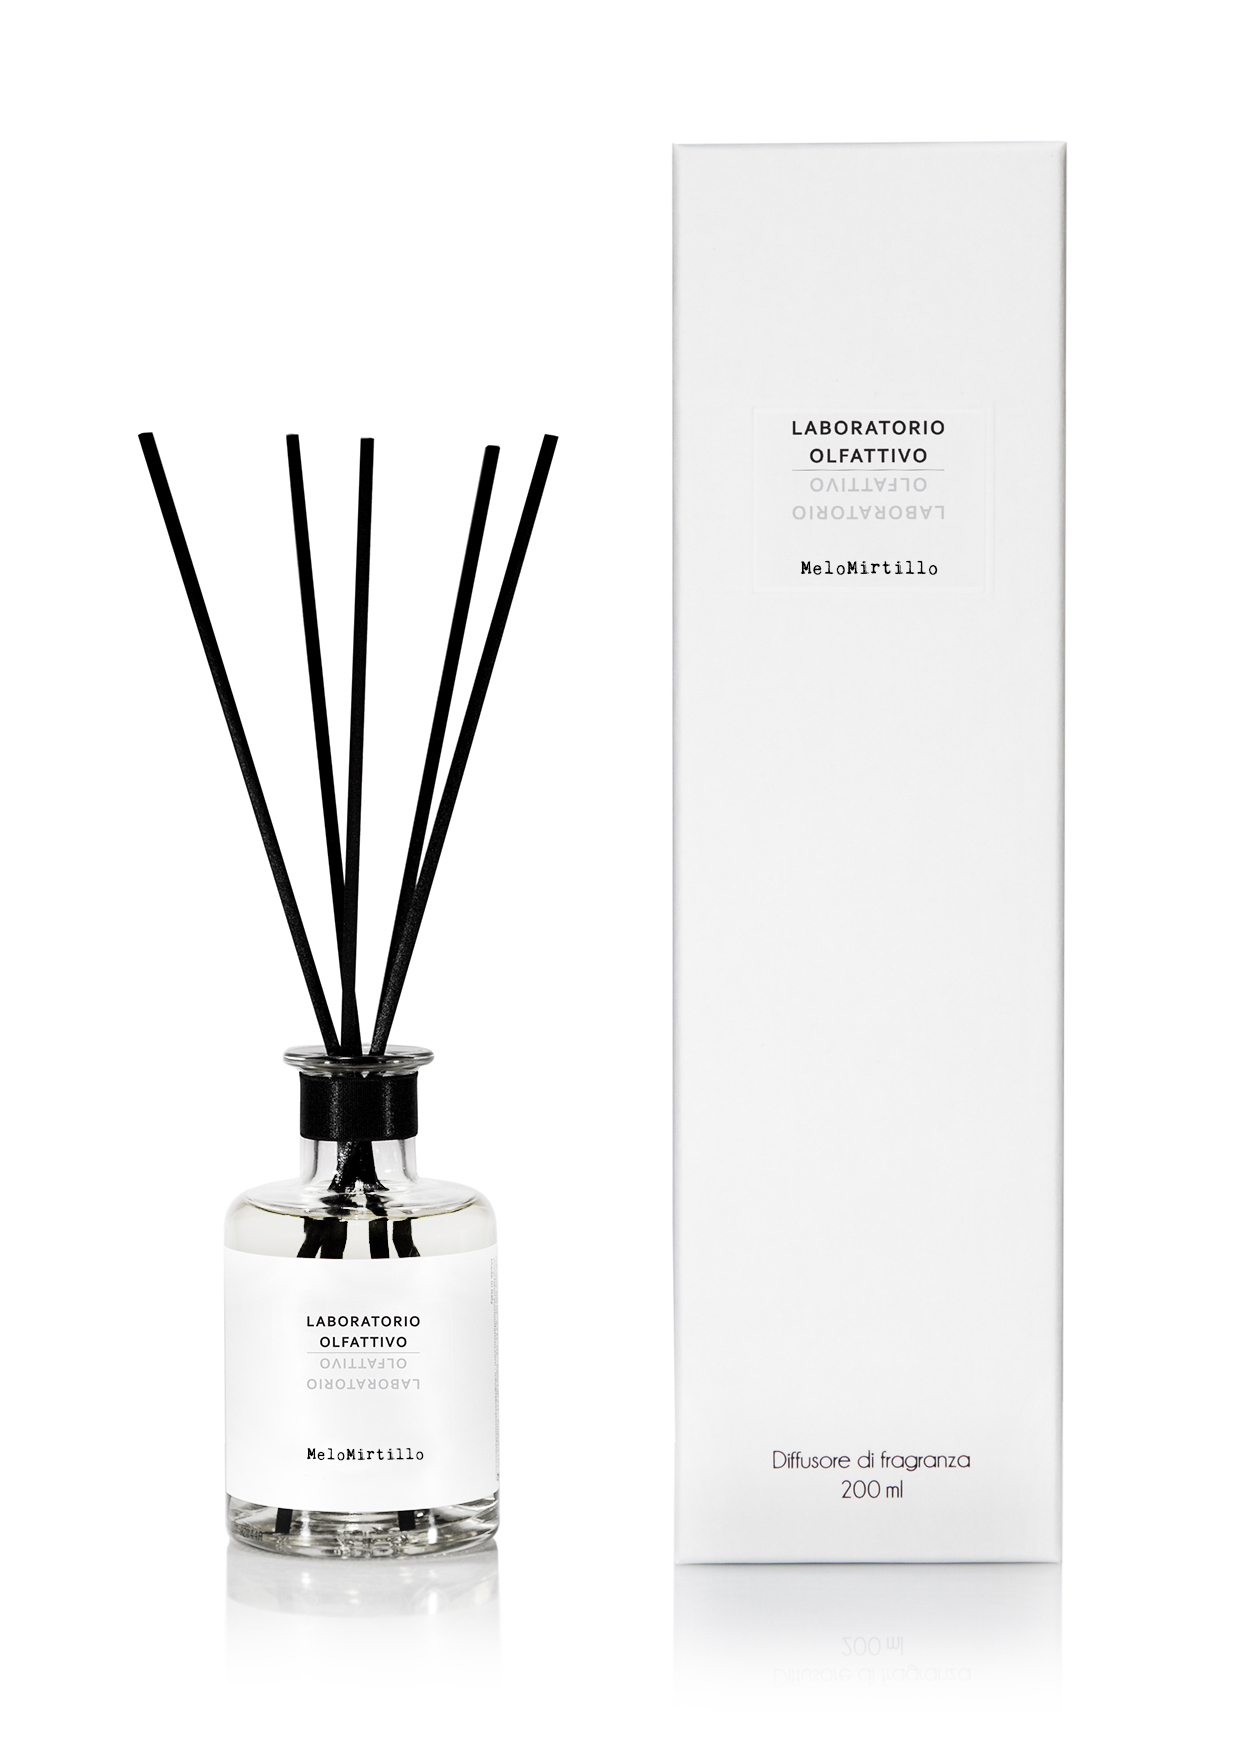 LABORATORIO OLFATTIVO DIFFUSER 200ML MELOMIRTILLO